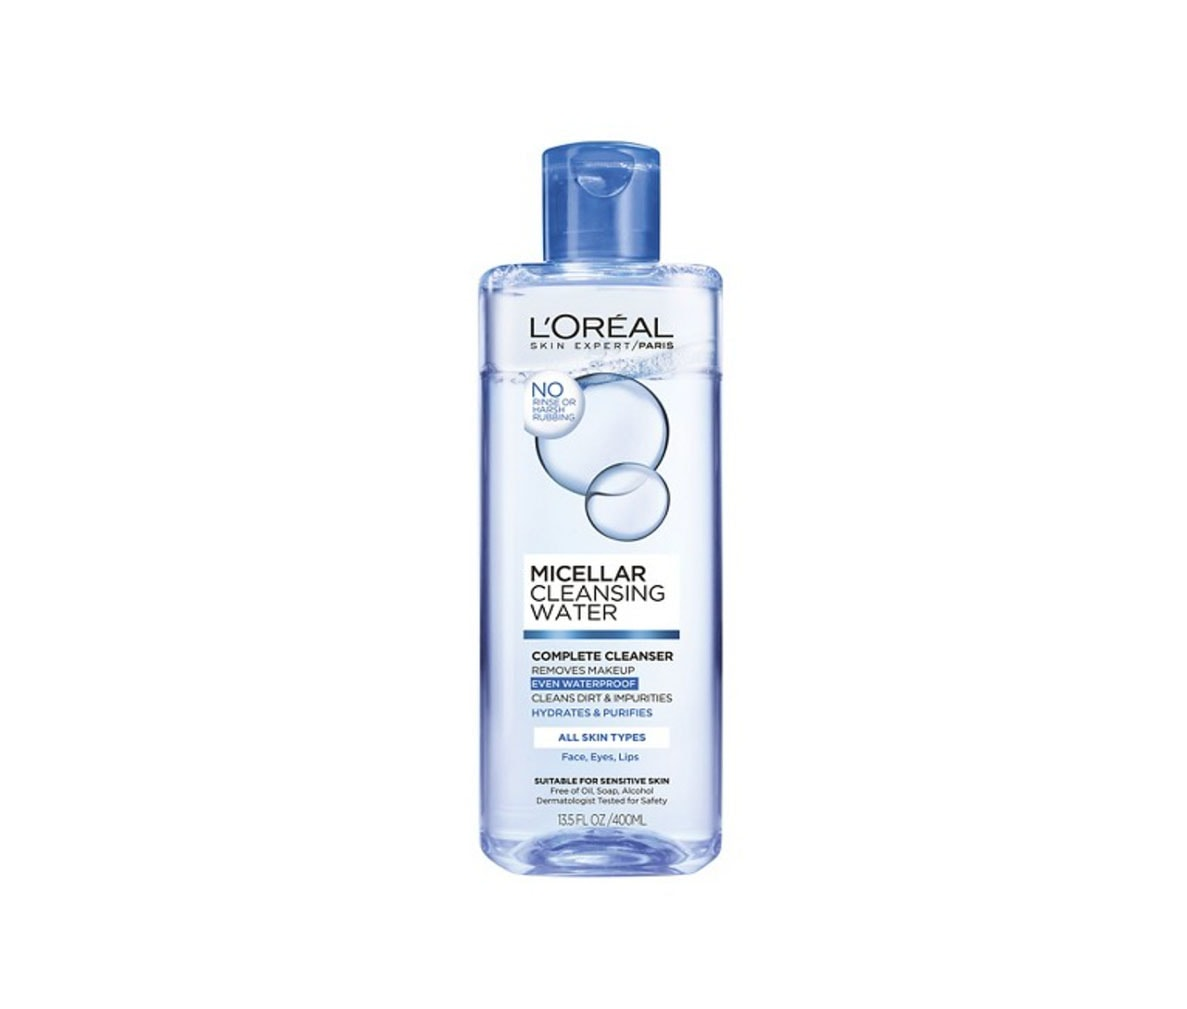 Best cleansing water for that squeaky clean feeling: L'Oreal Micellar Water